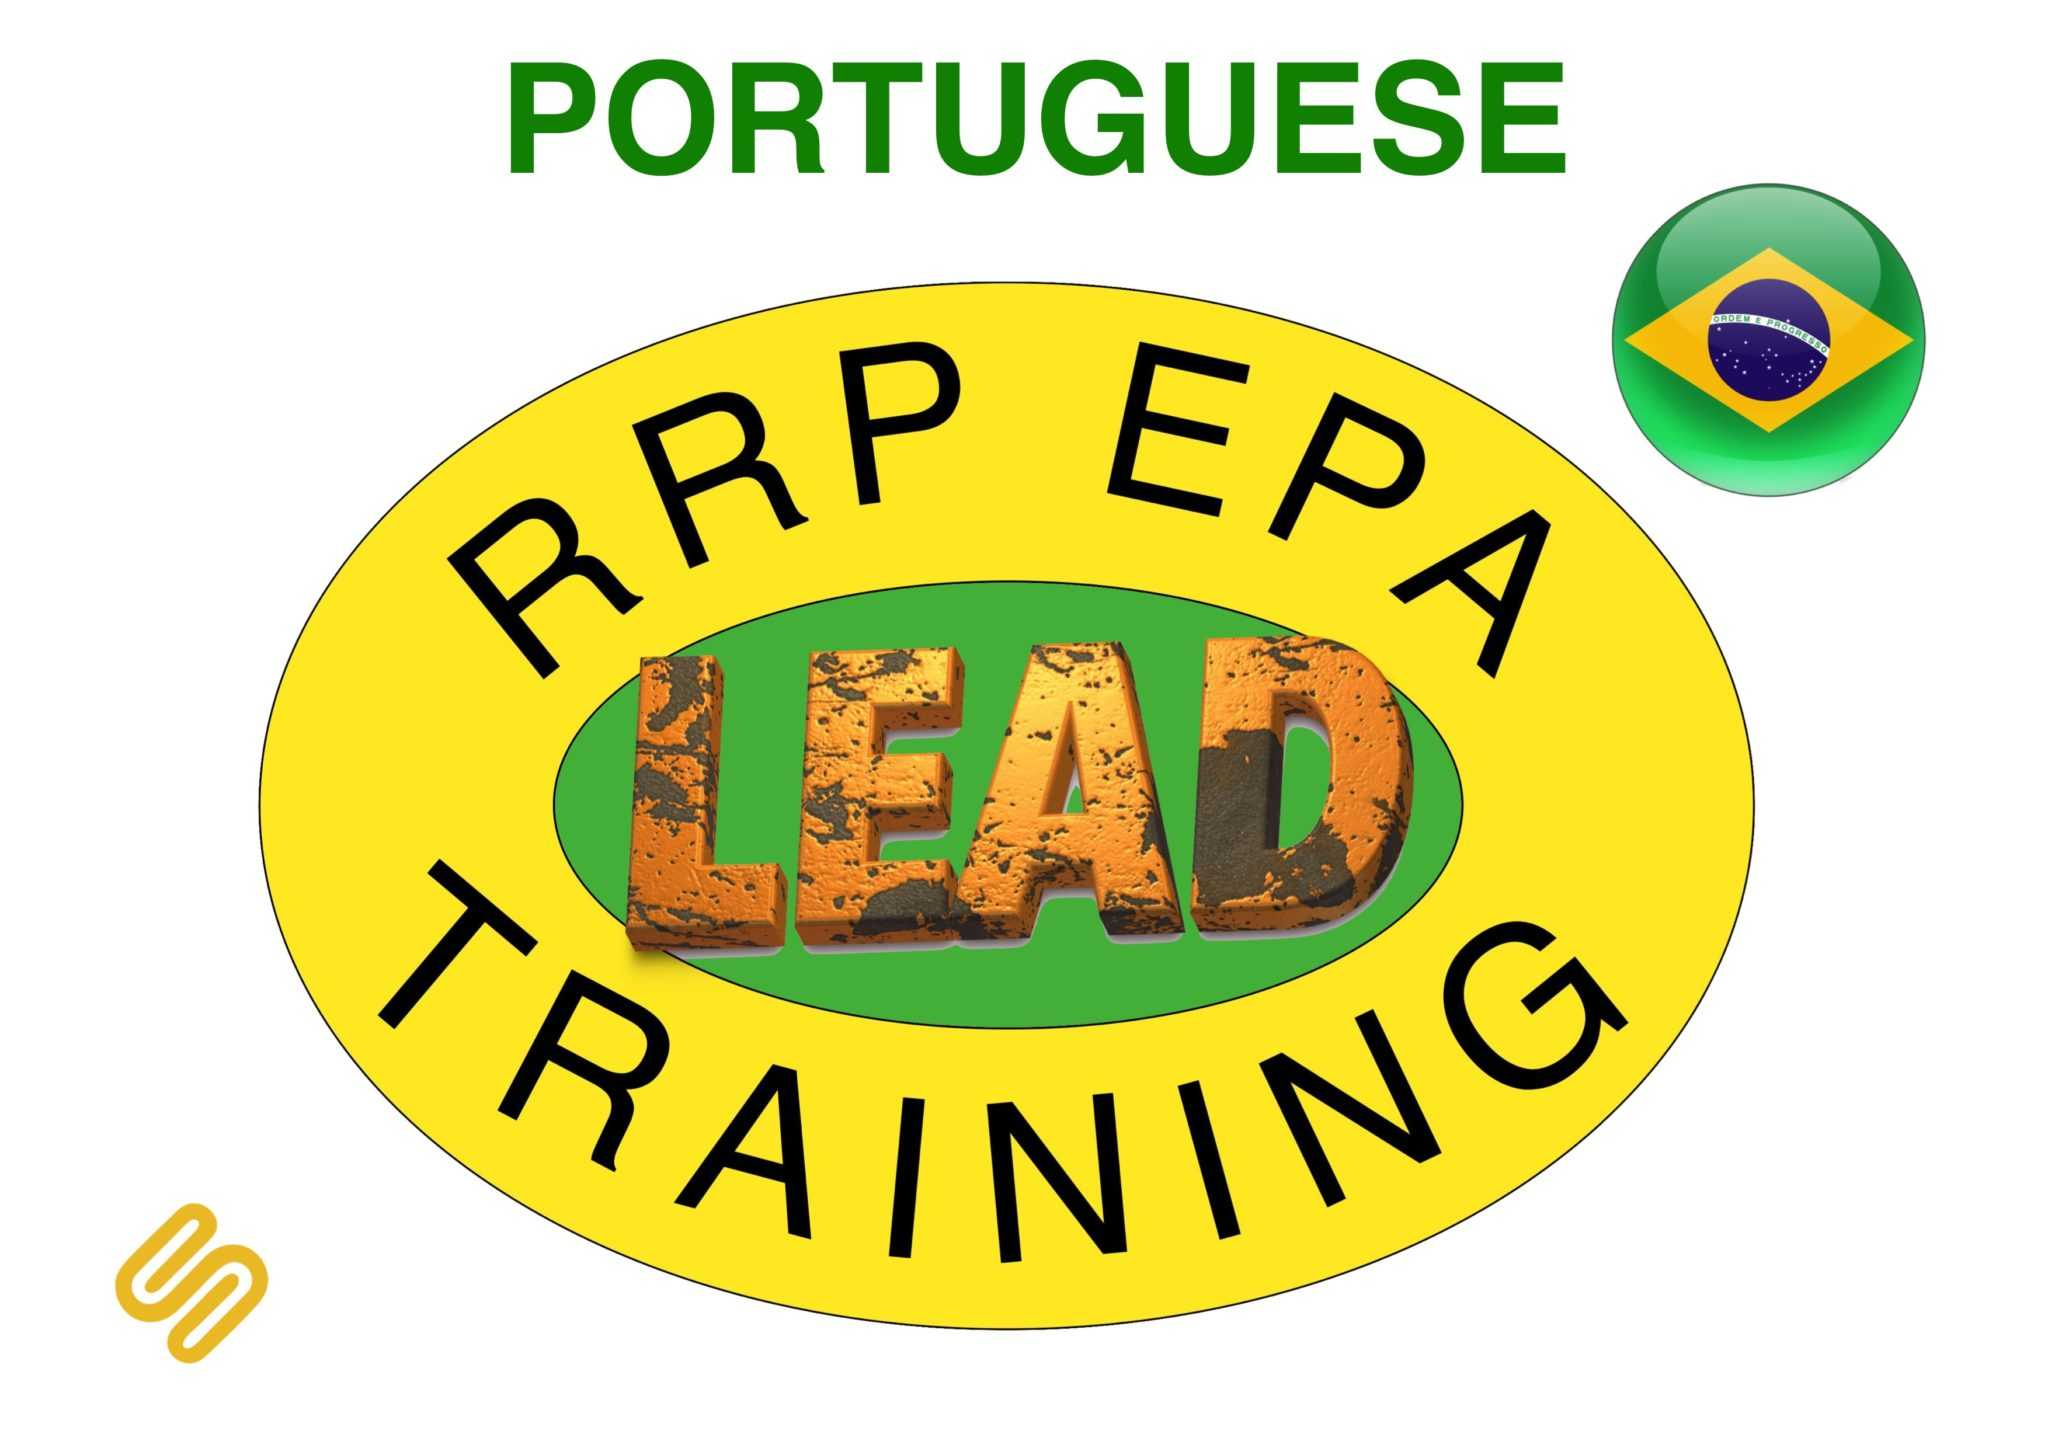 rrp lead paint english rrp lead paint spanish rrp lead paint portuguese